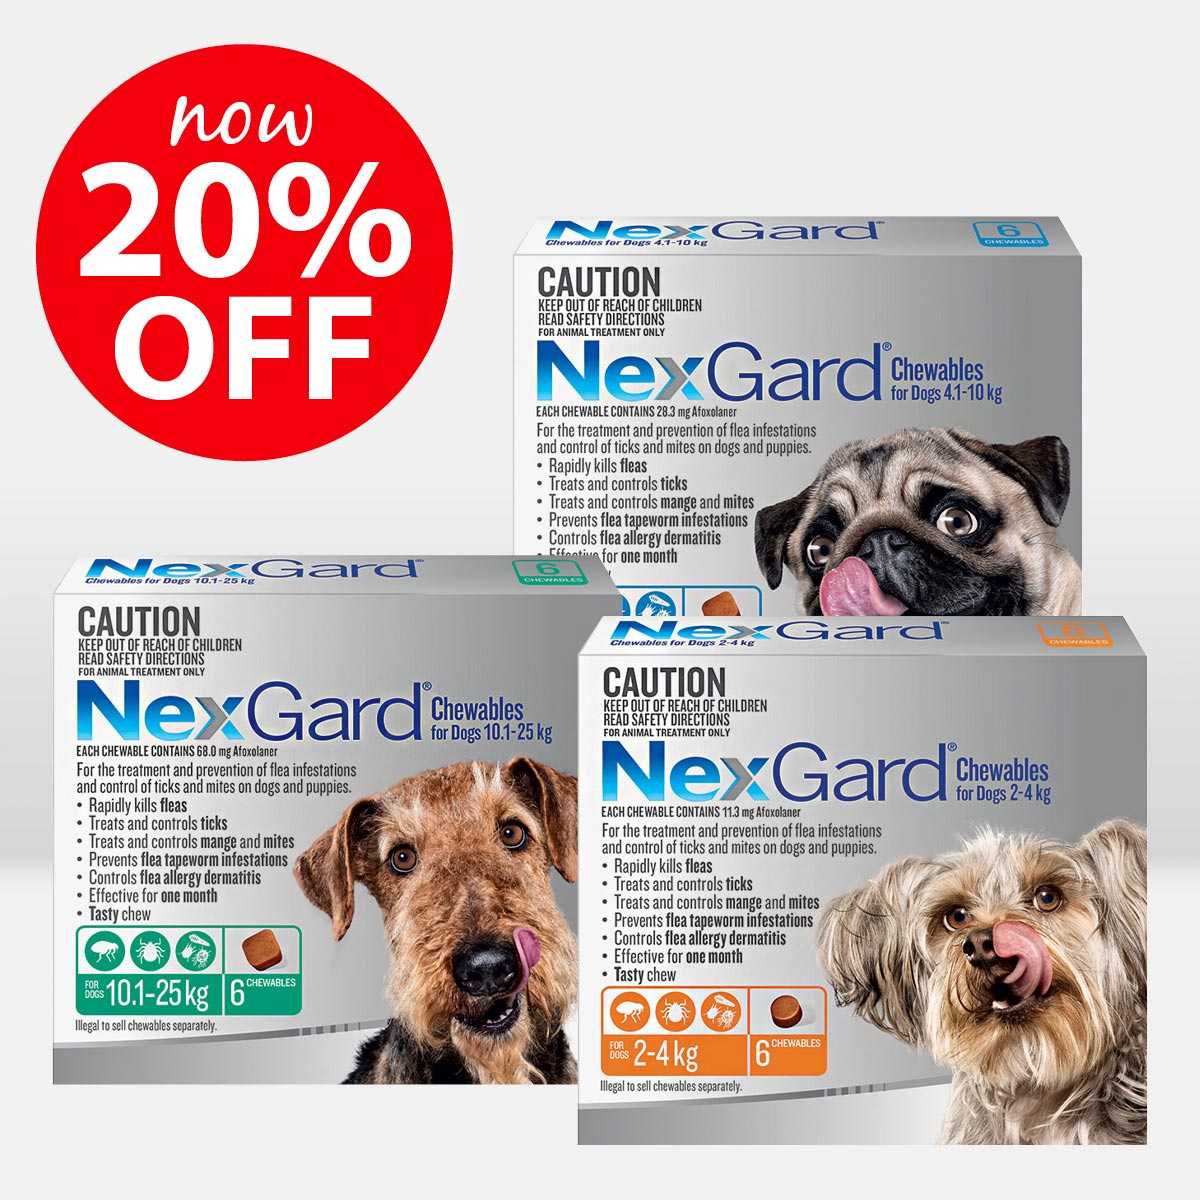 NexGard Chews for Dogs ON SALE